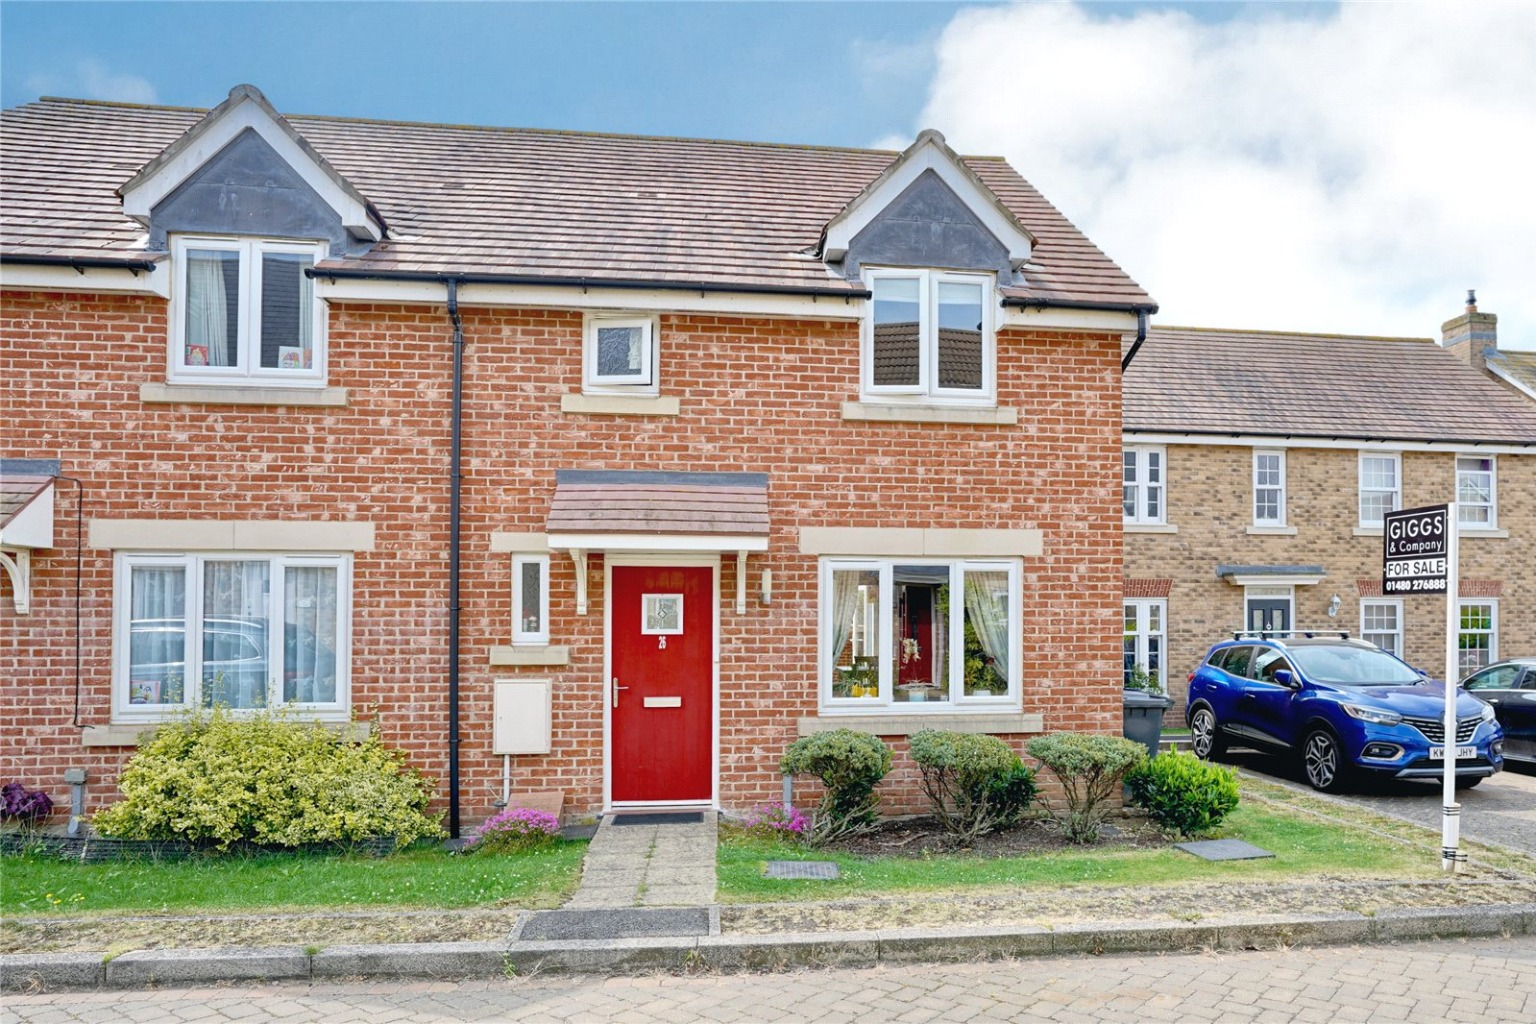 3 bed semi-detached house for sale in Middle Ground, St. Neots - Property Image 1